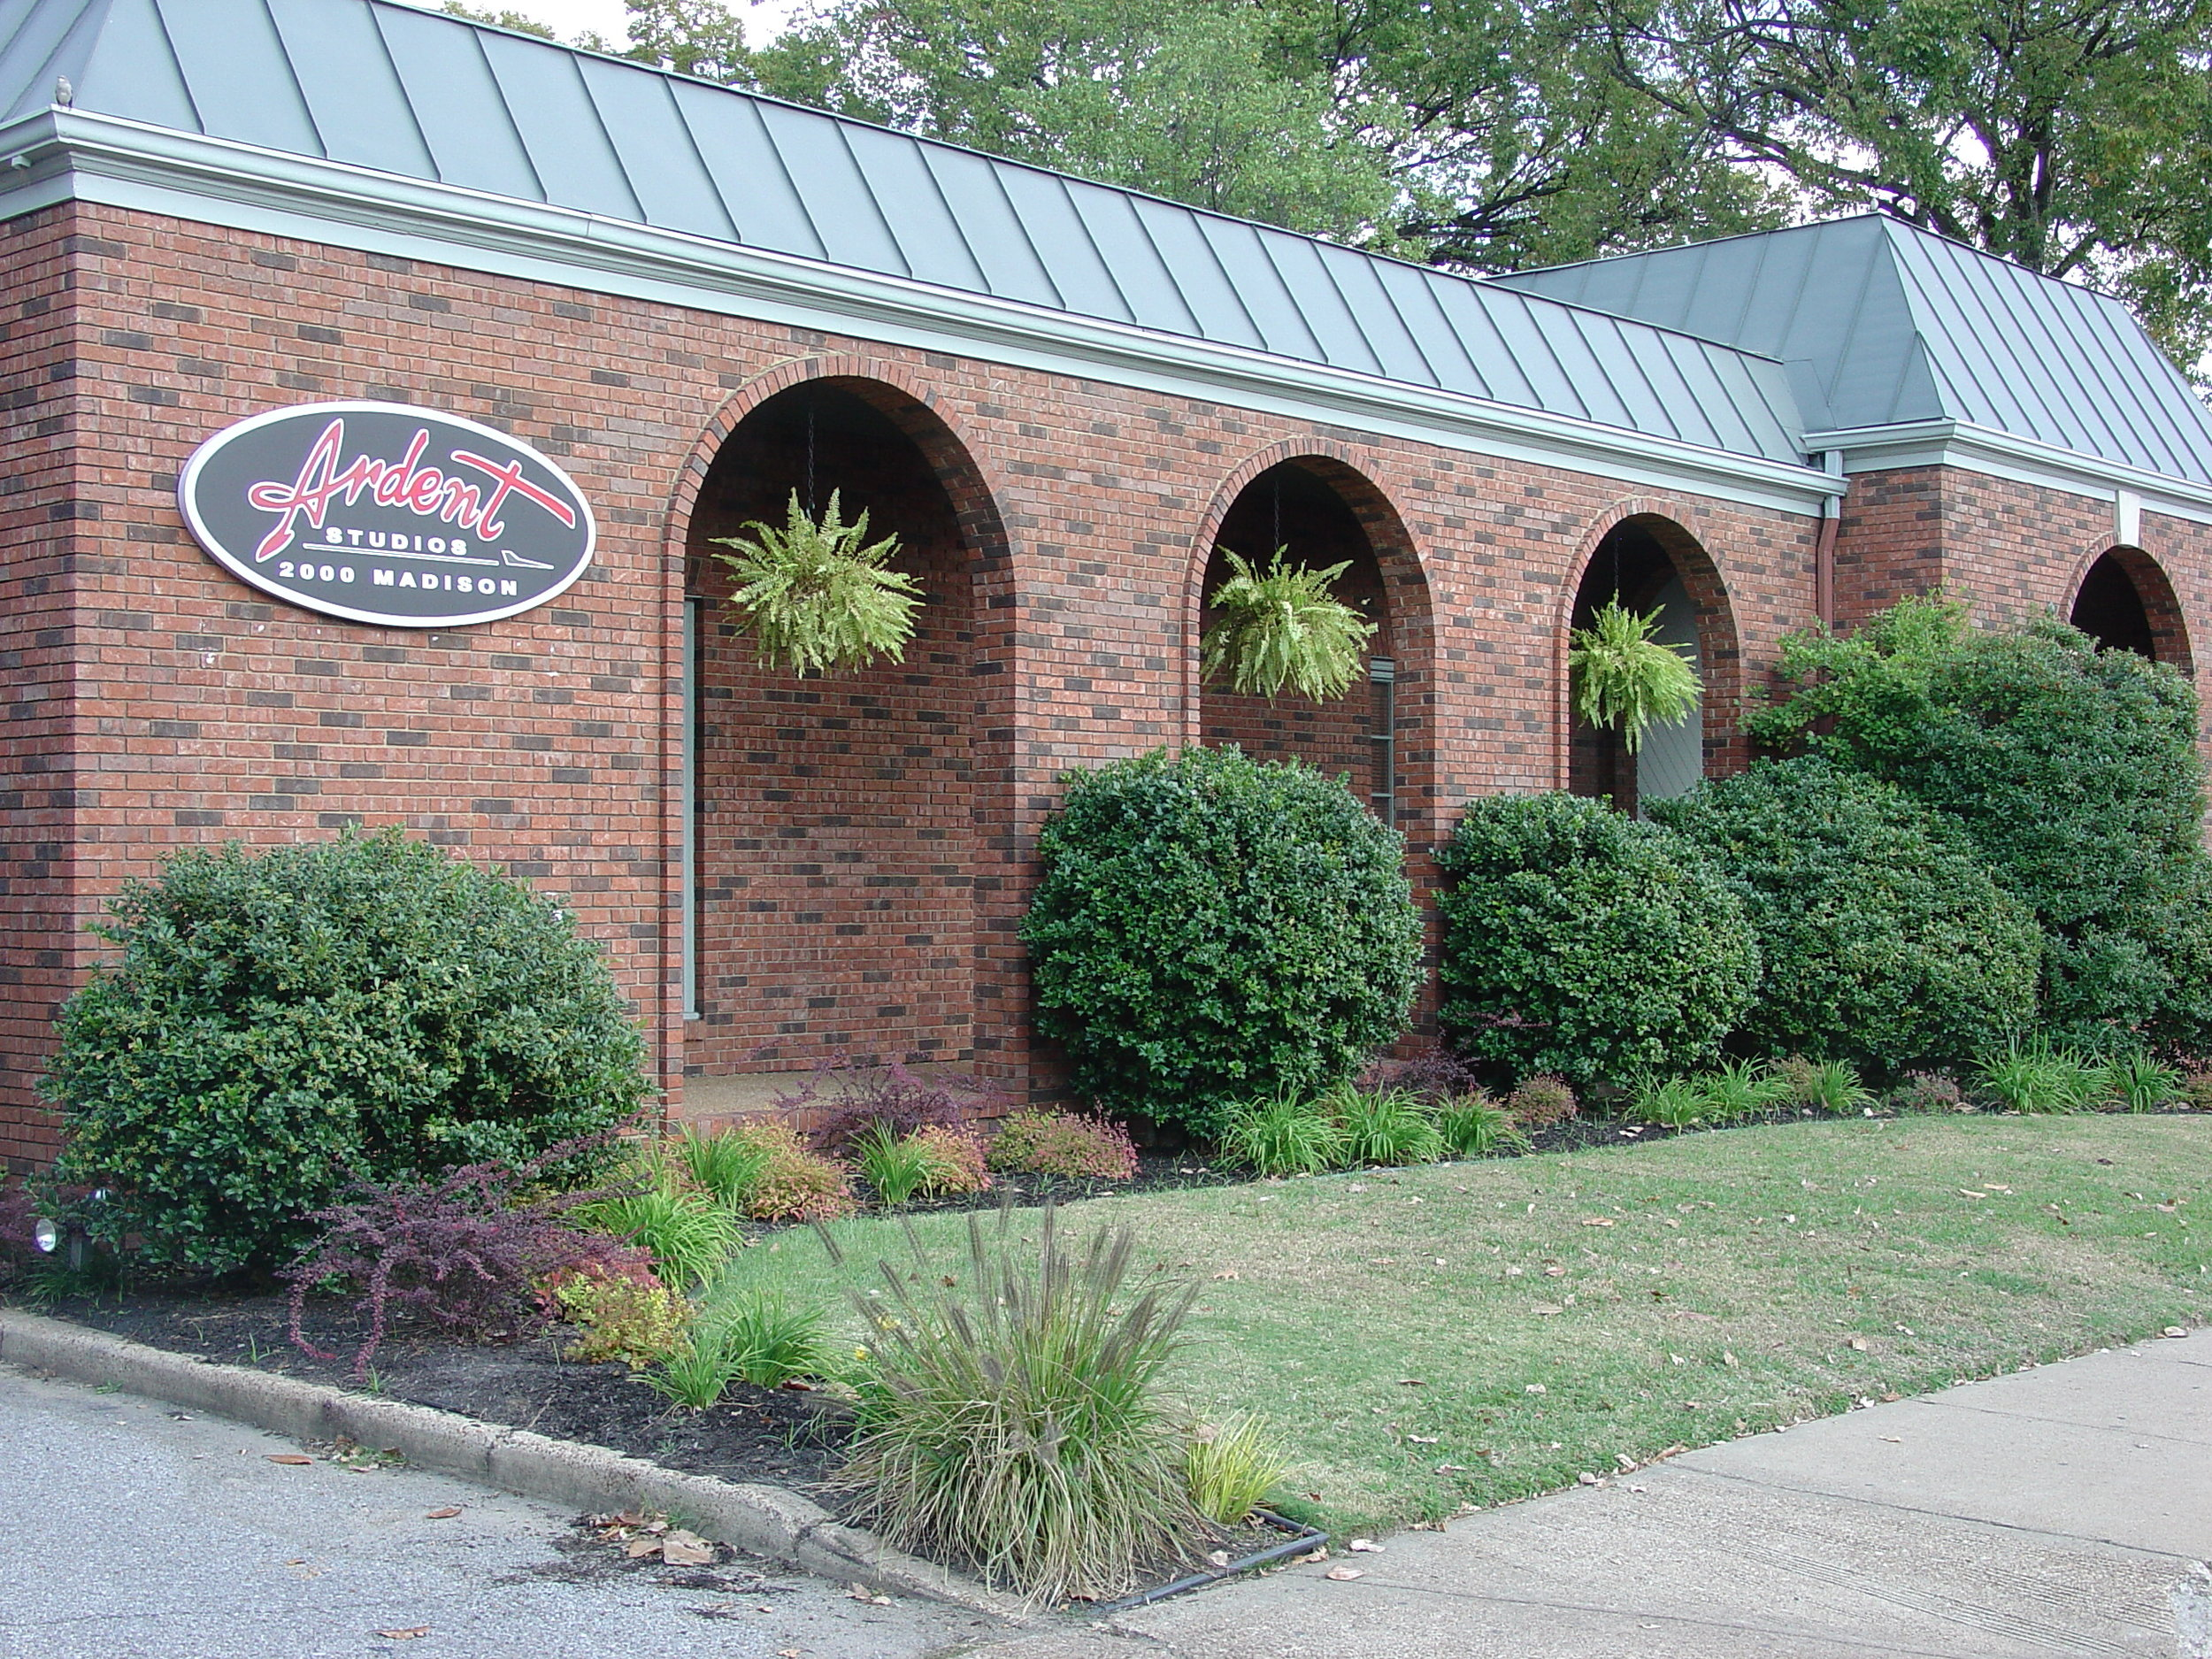 Ardent Studios at it's current location on Madison Ave. in Memphis, TN